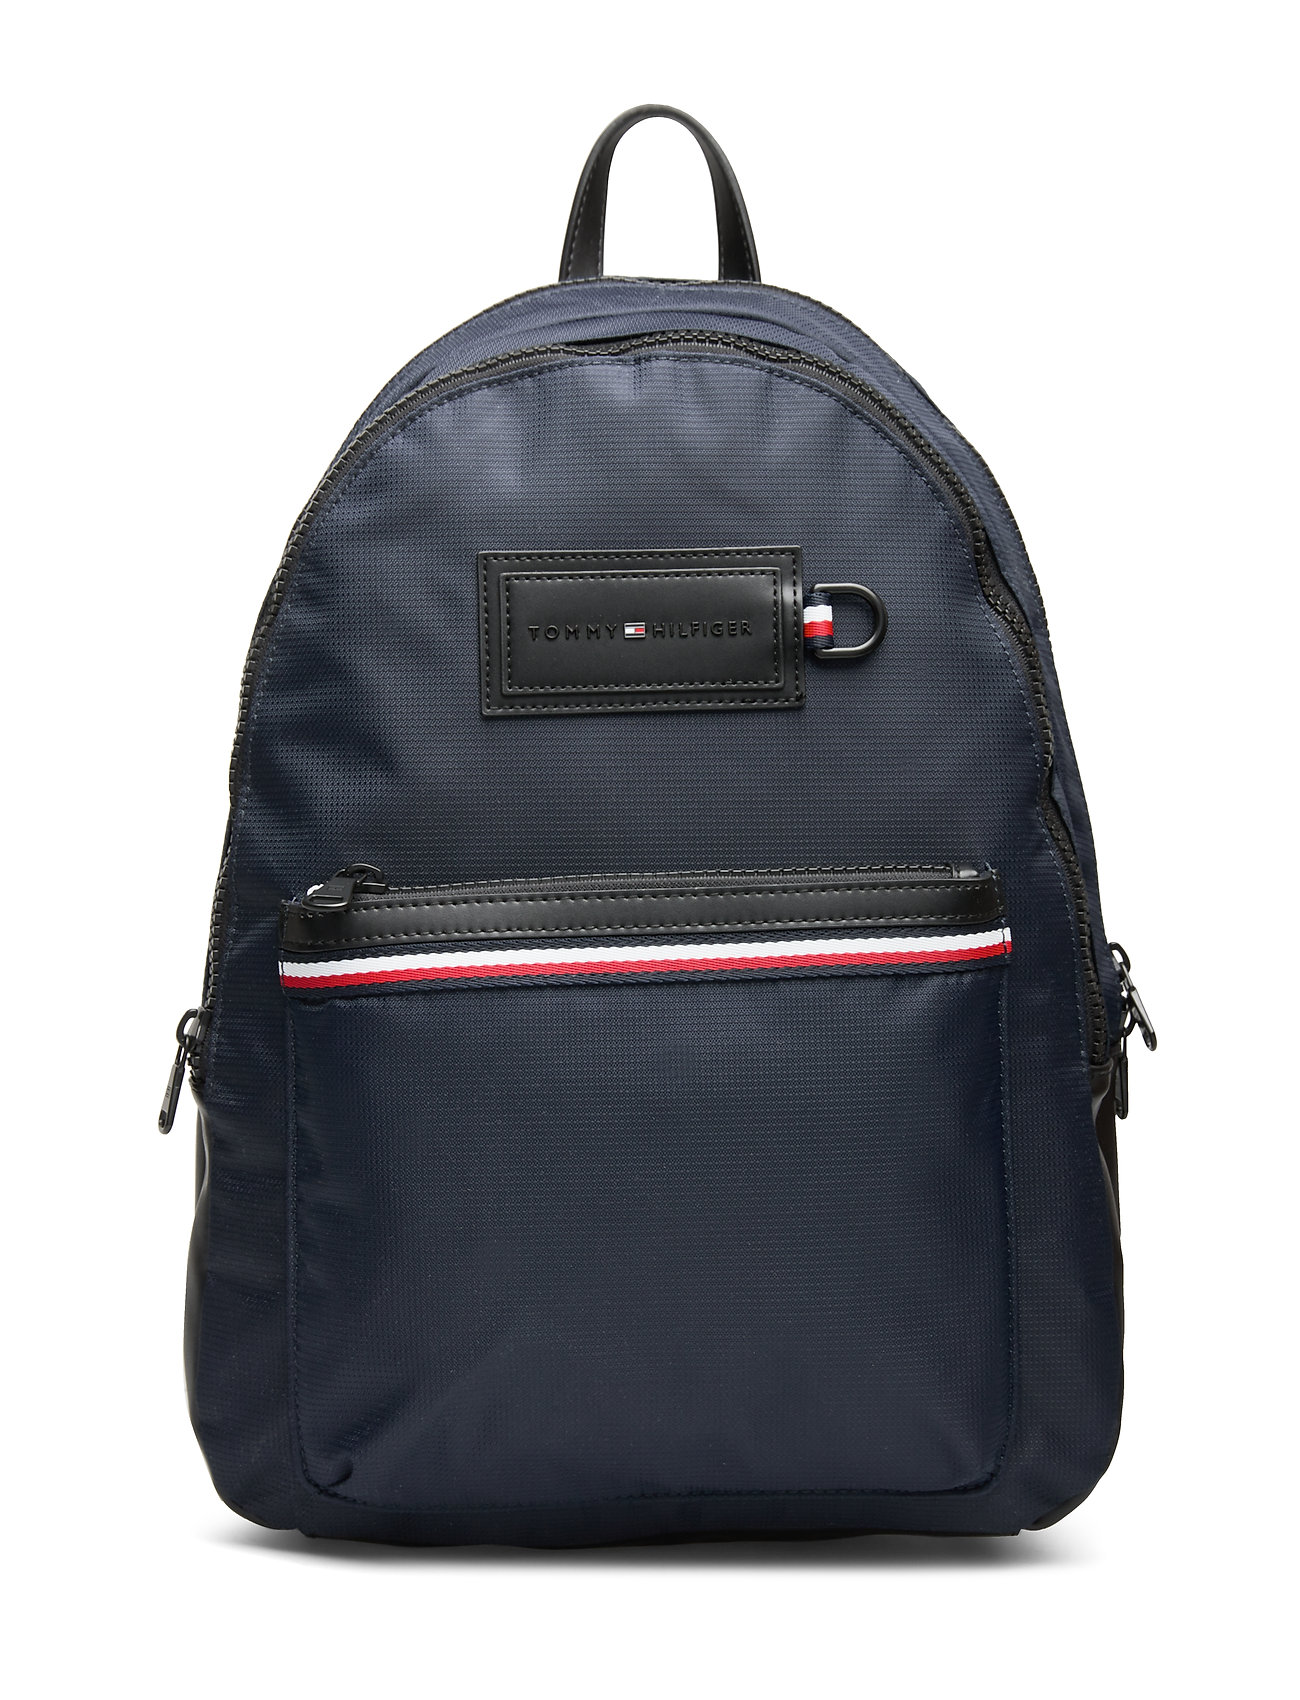 Tommy Hilfiger MODERN NYLON BACKPAC - SKY CAPTAIN